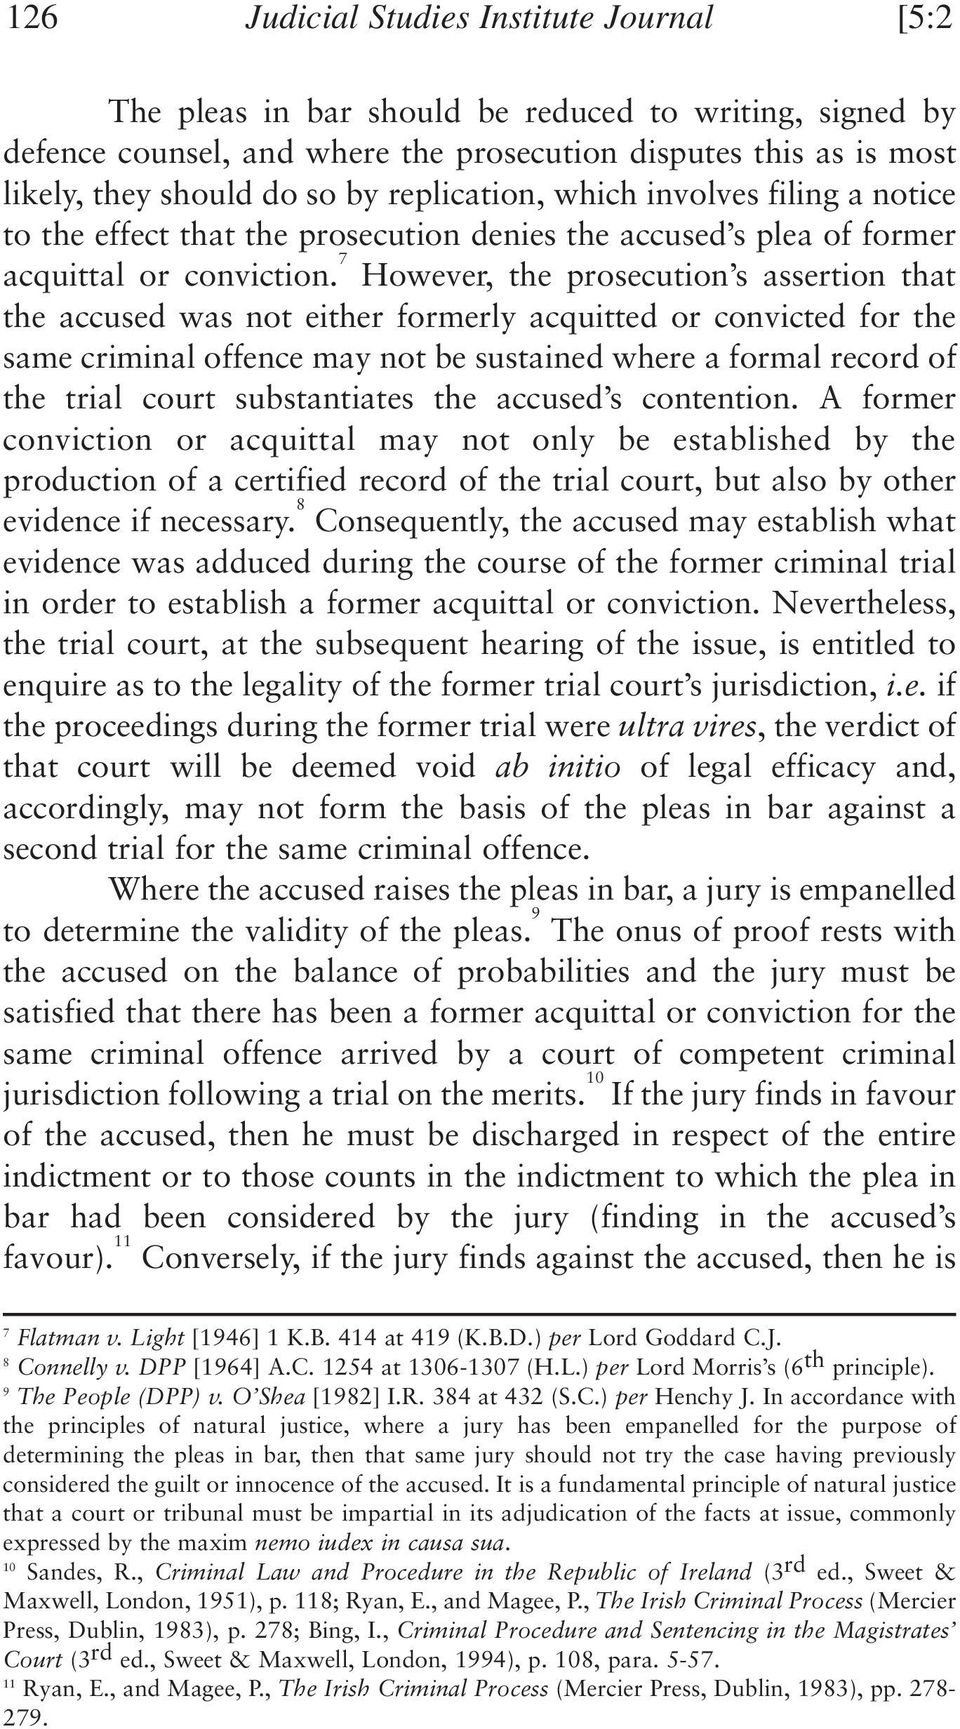 7 However, the prosecution s assertion that the accused was not either formerly acquitted or convicted for the same criminal offence may not be sustained where a formal record of the trial court